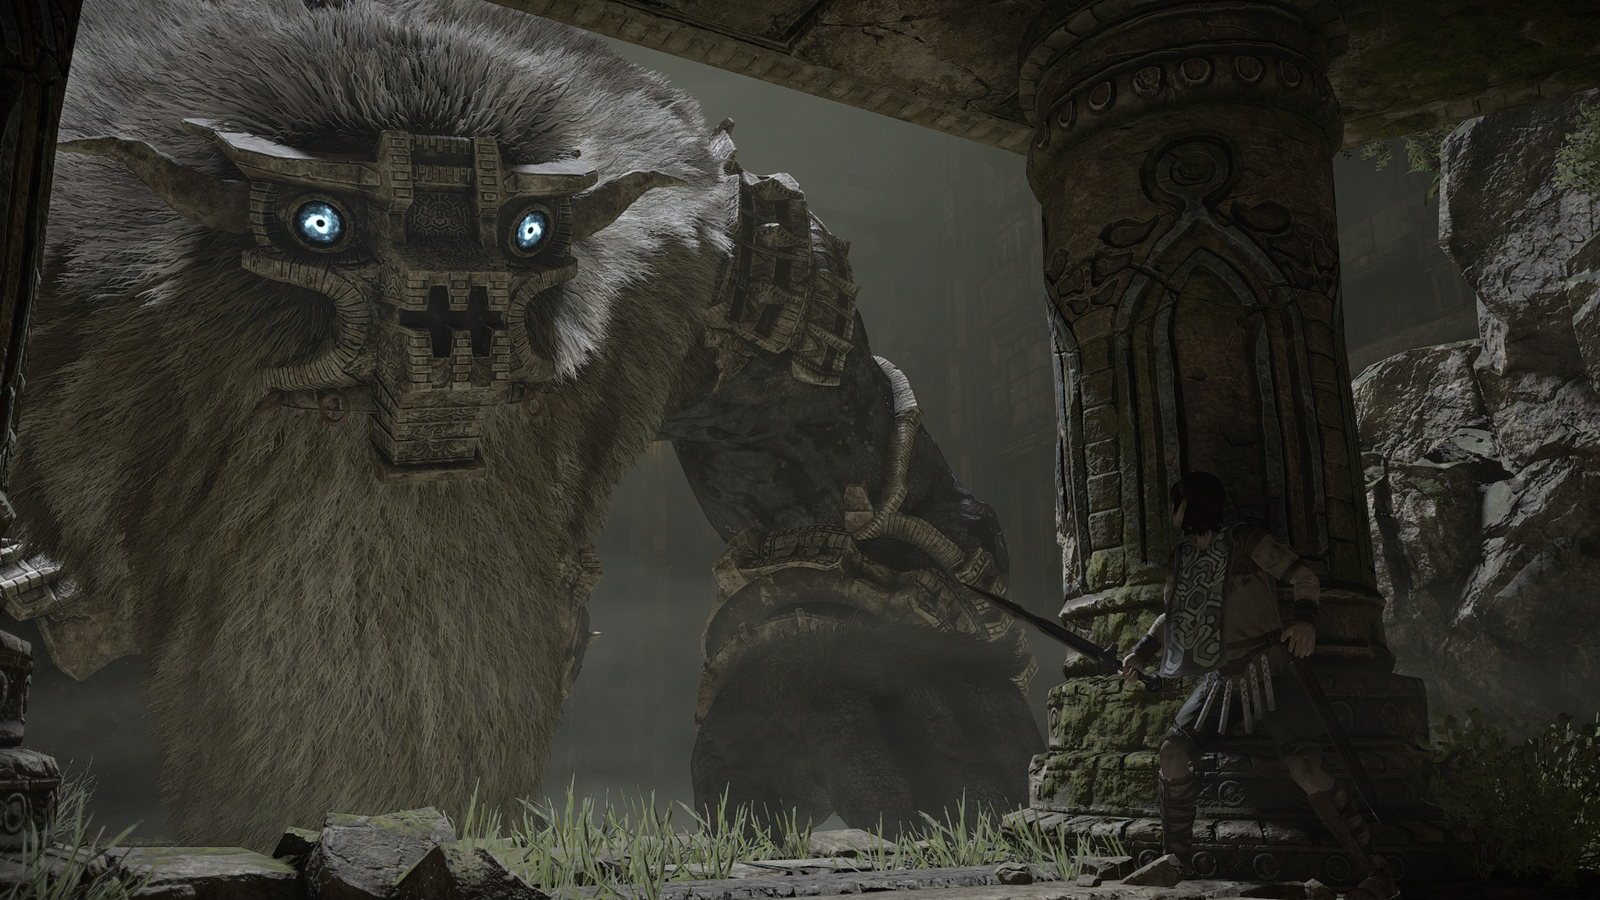 Shadow Of The Colossus Ps4 Wallpaper: The Shadow Of The Colossus Remake Is Heresy—and It's Also